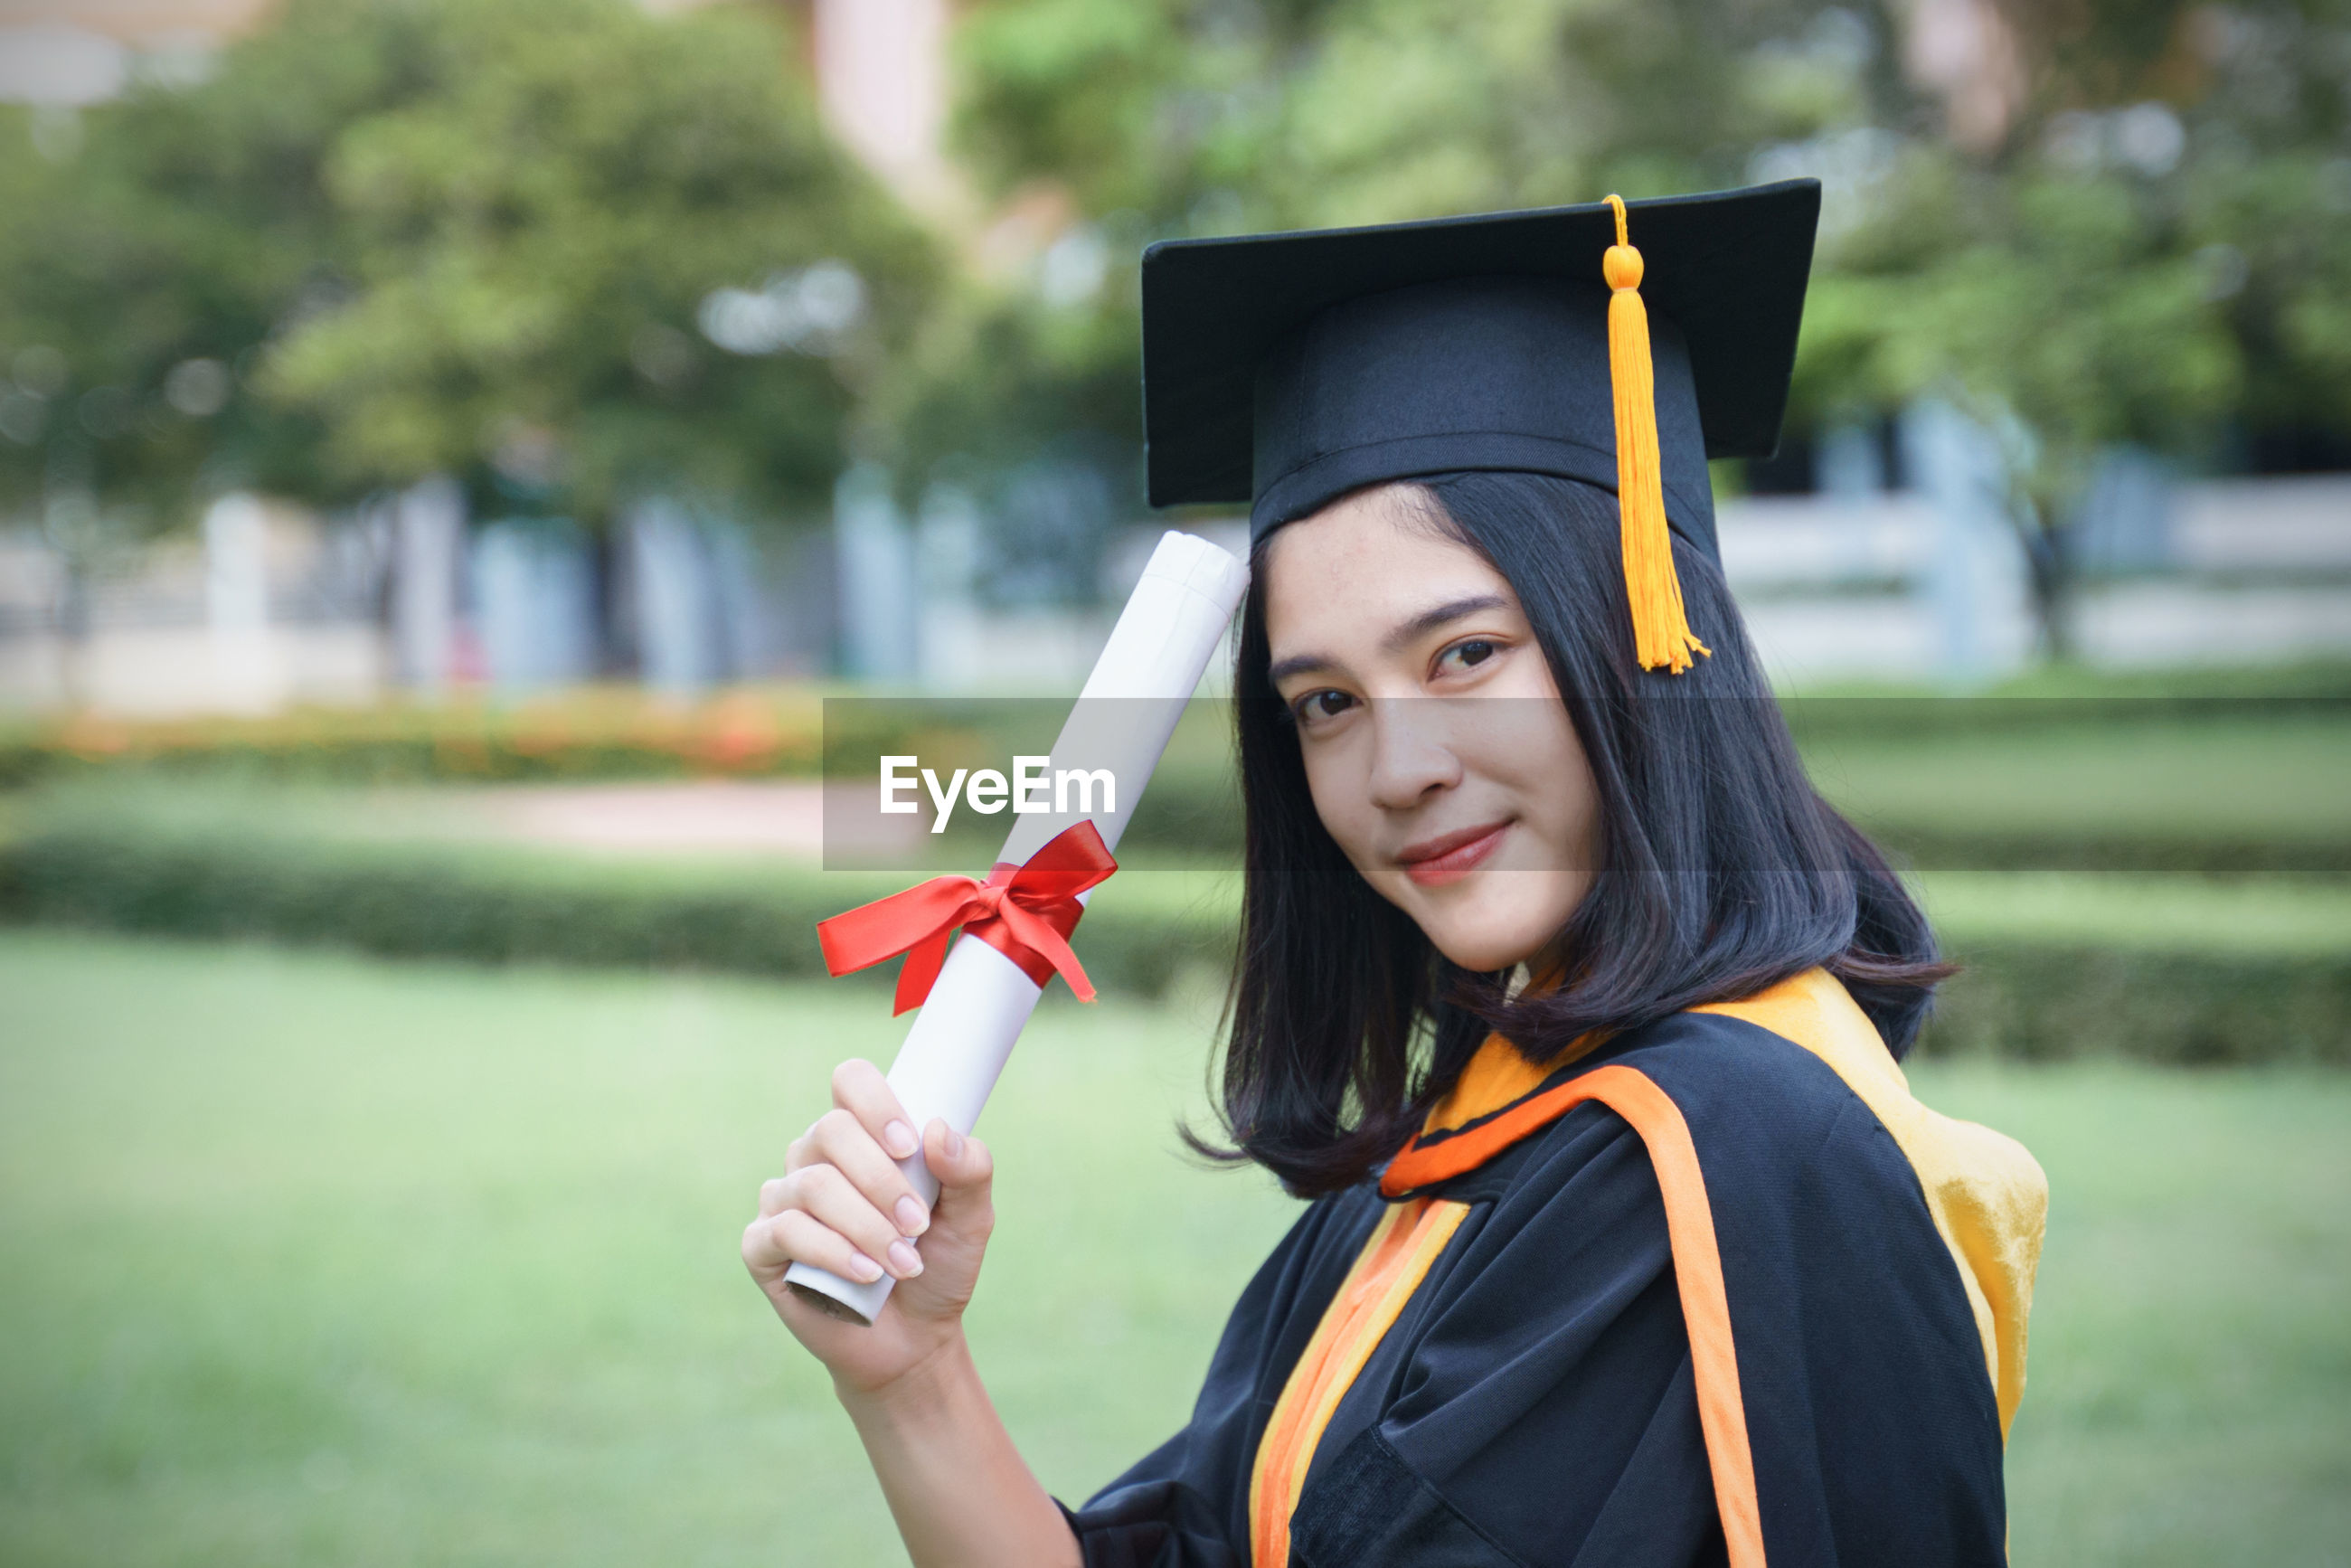 Portrait of smiling young woman in graduation gown standing outdoors